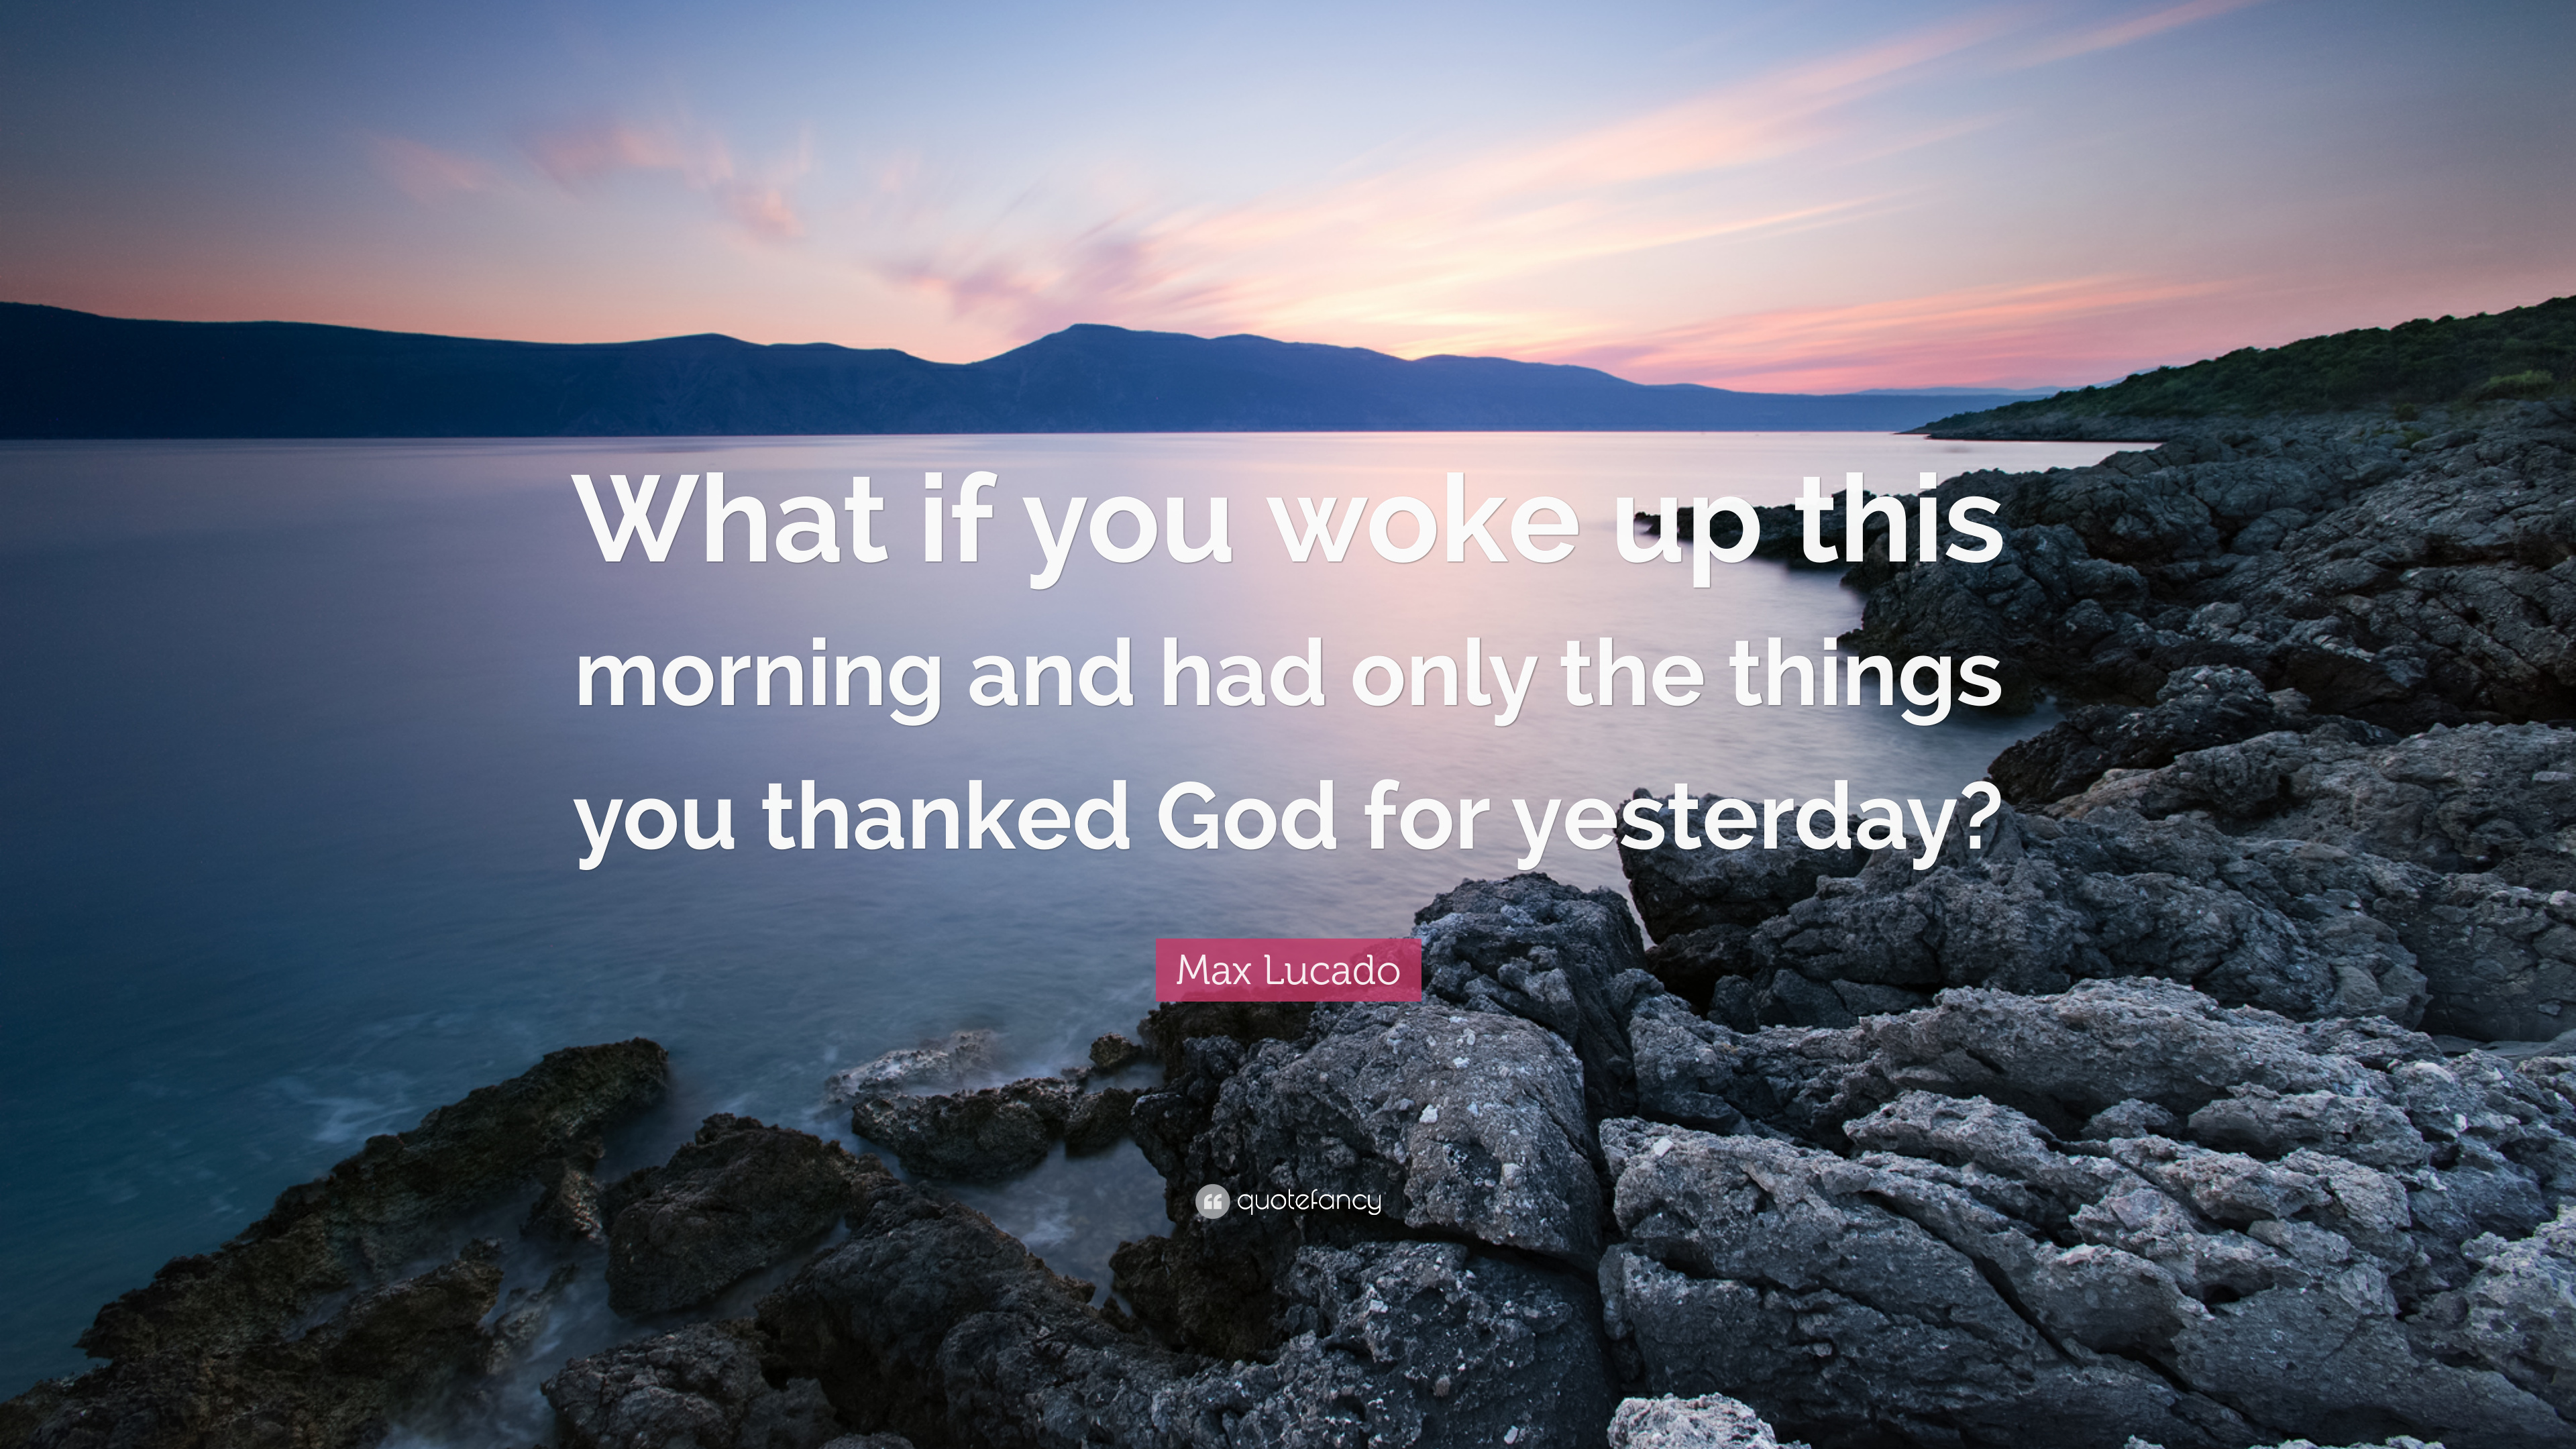 Max Lucado Quotes | Max Lucado Quote What If You Woke Up This Morning And Had